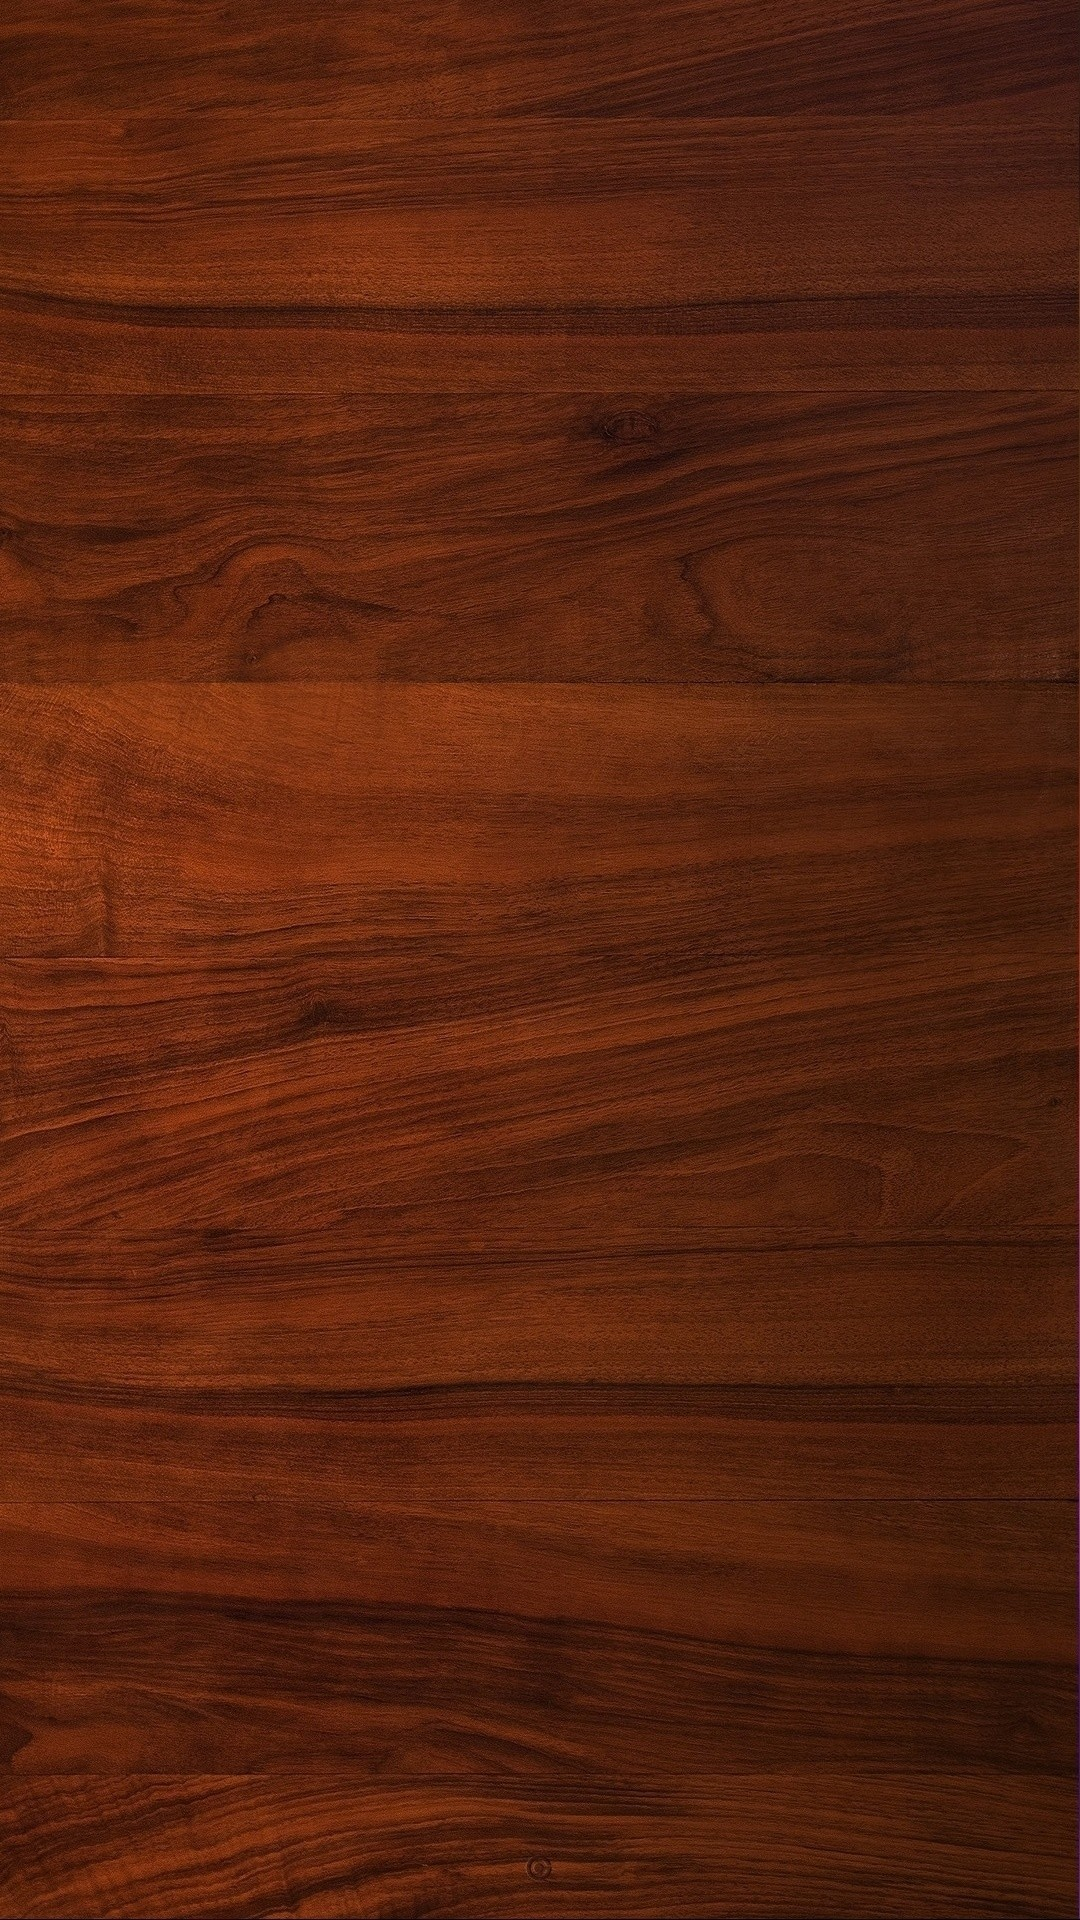 Wood hd wallpaper for mobile